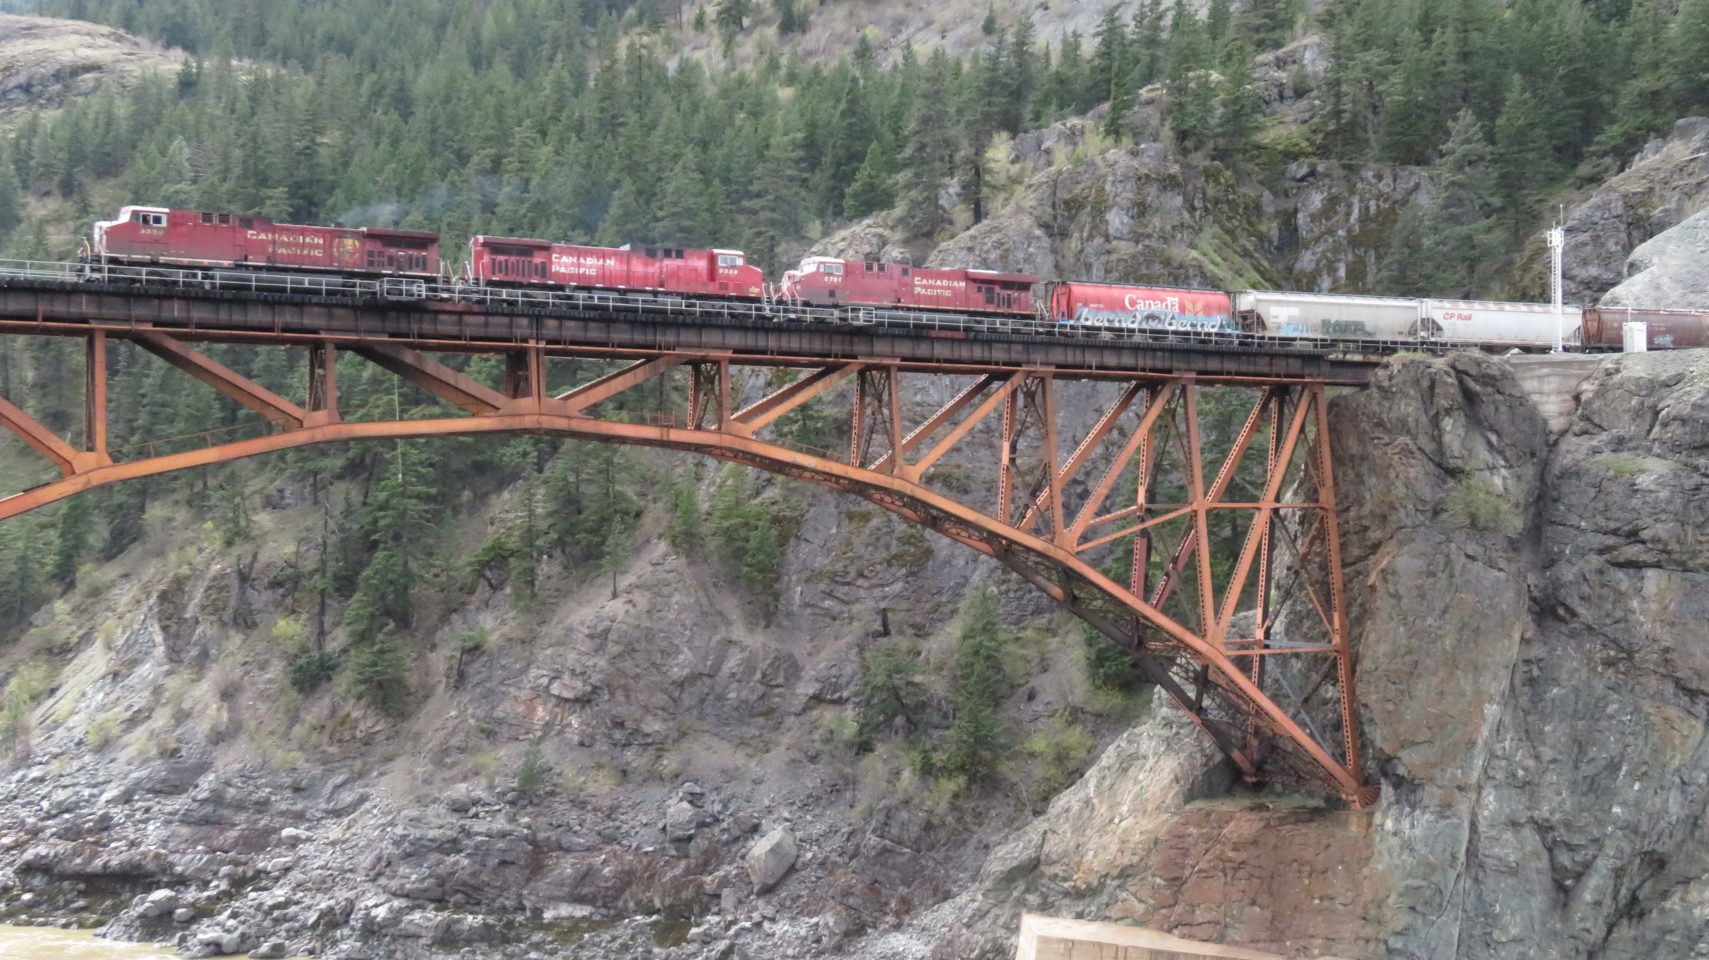 Imagine the heroism required to build this bridge ! Rocky Mountaineer ~ The Trip of a Lifetime ...